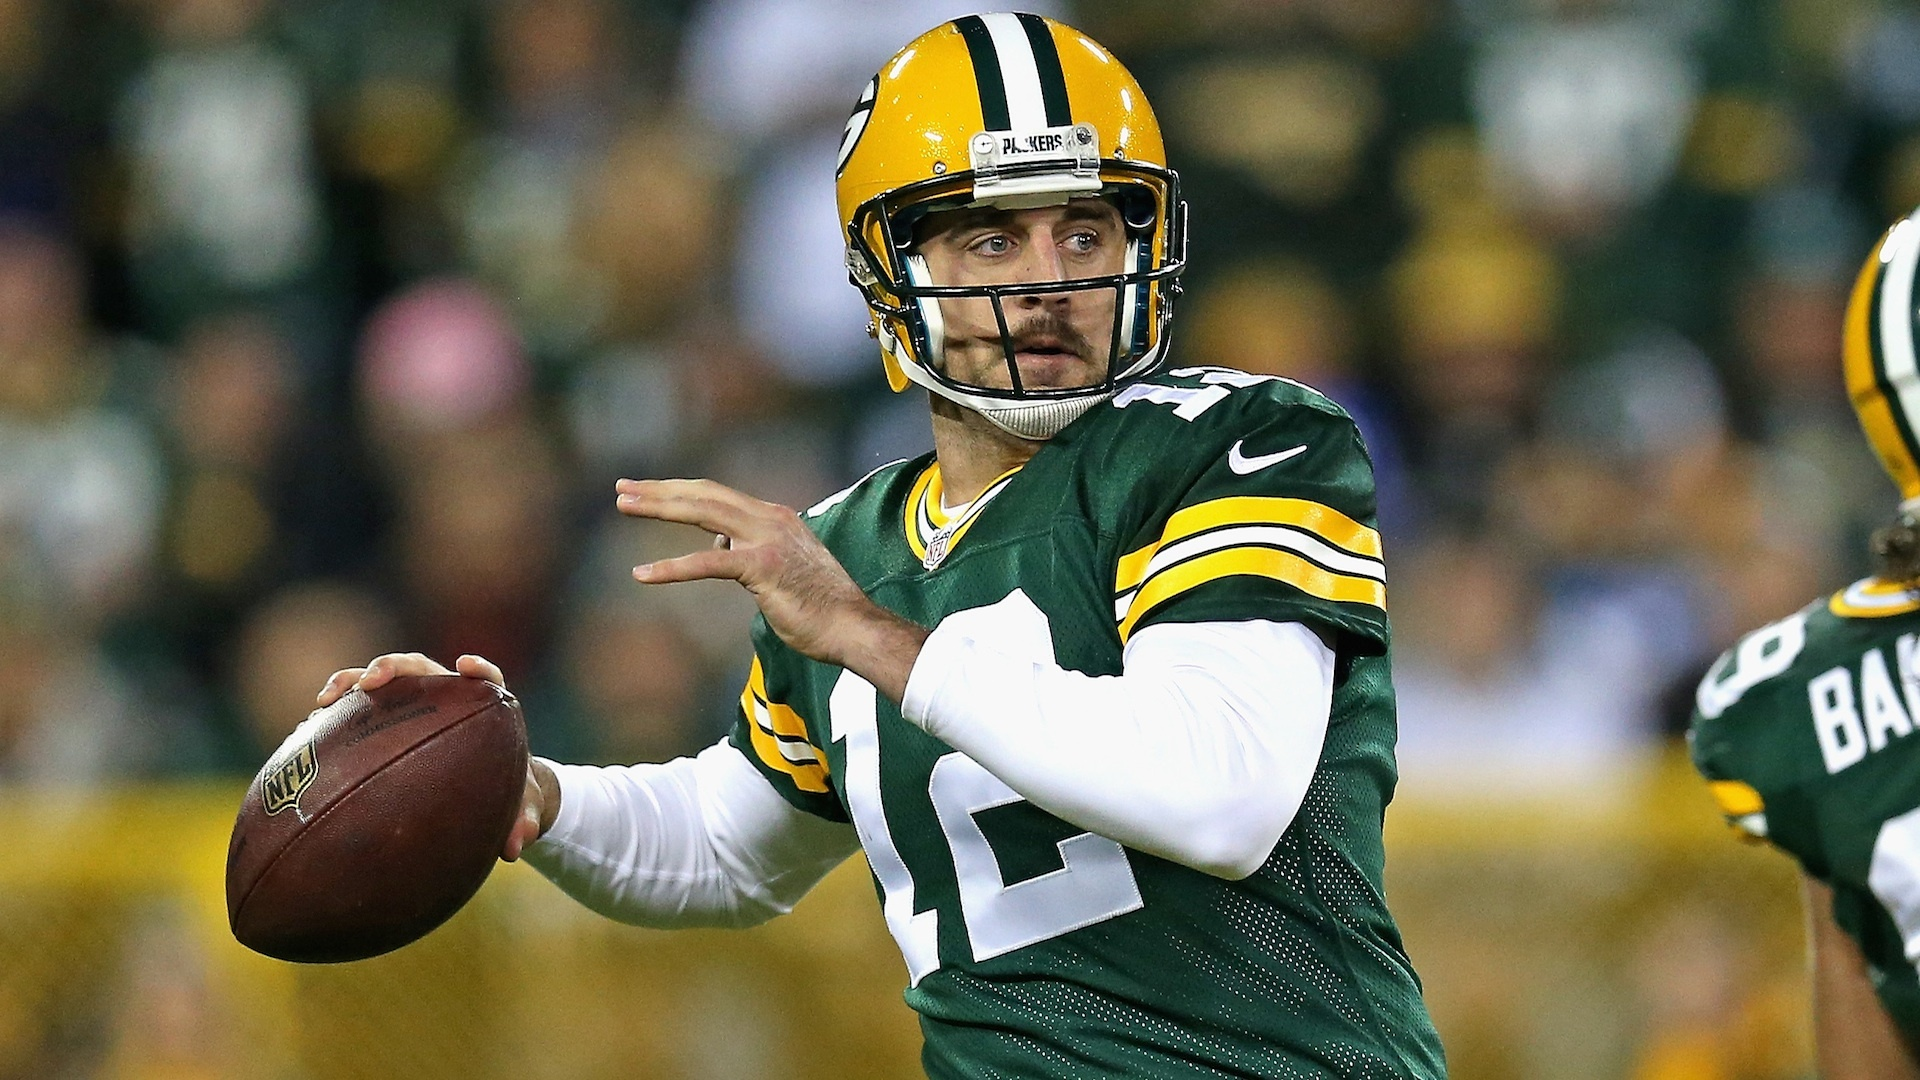 Ranking the Top 5 NFL MVP Candidates